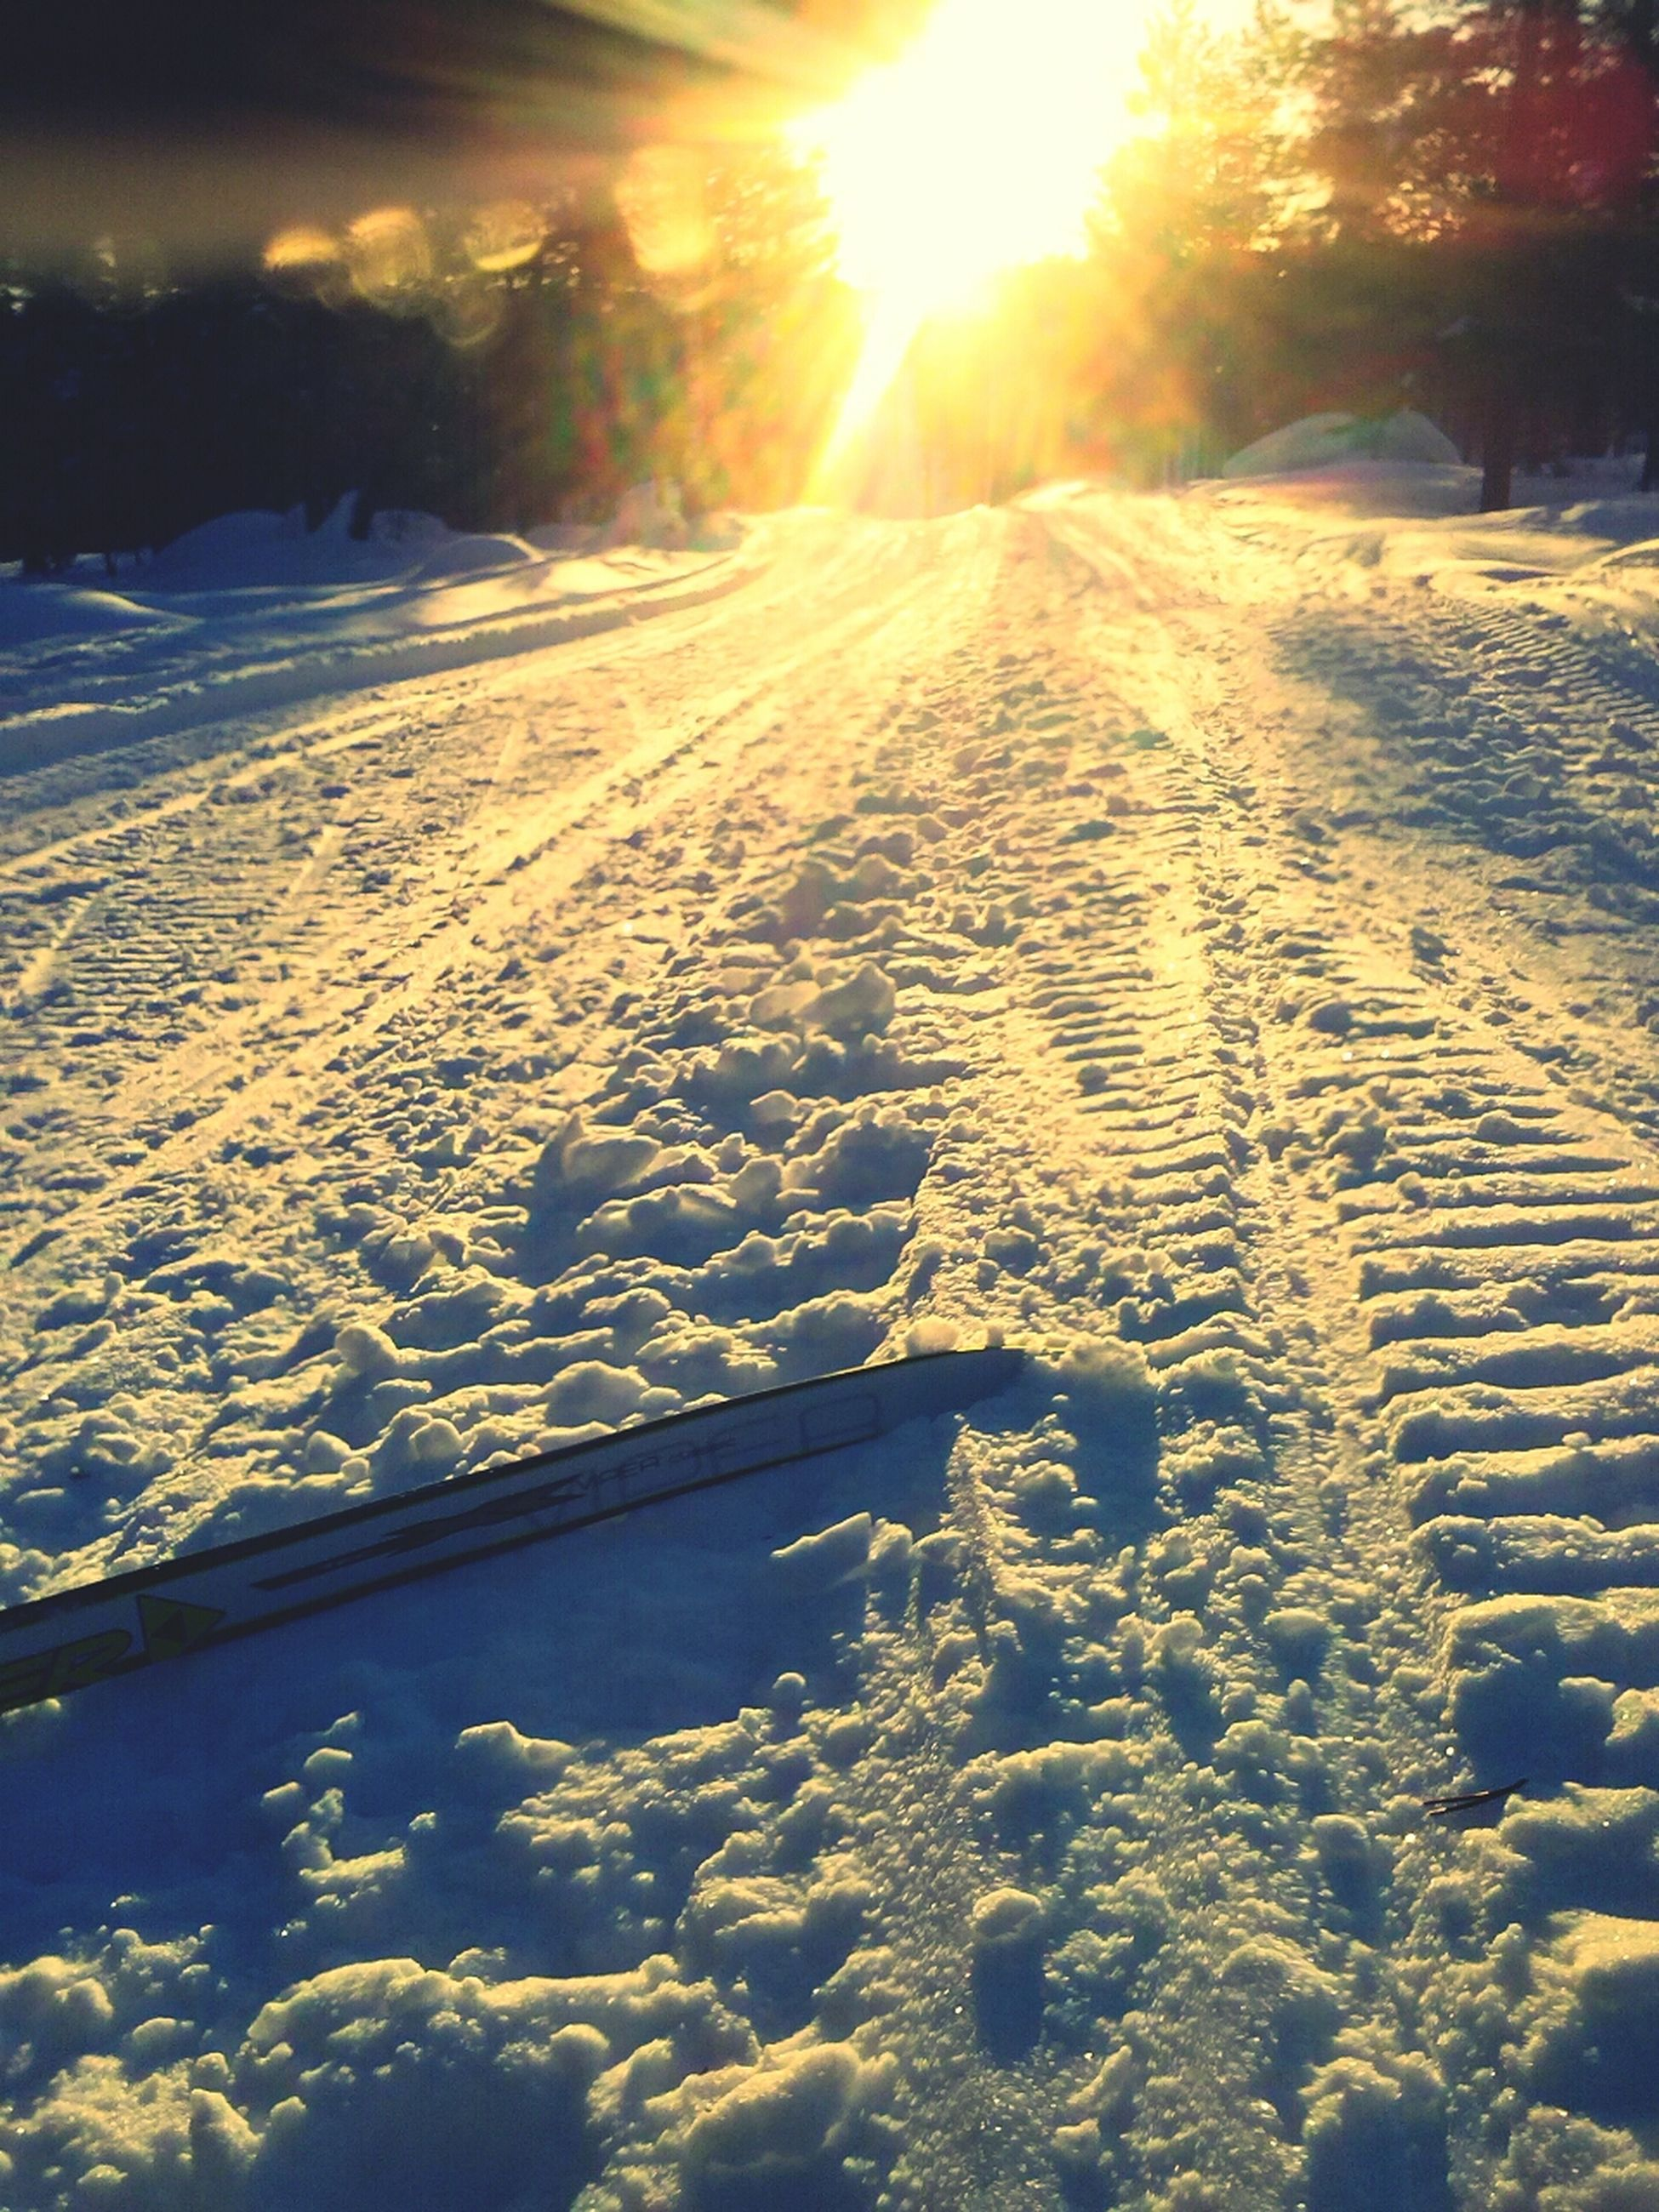 snow, winter, cold temperature, sun, season, sunlight, transportation, sunbeam, nature, tranquility, covering, tranquil scene, lens flare, landscape, weather, beauty in nature, road, the way forward, scenics, frozen